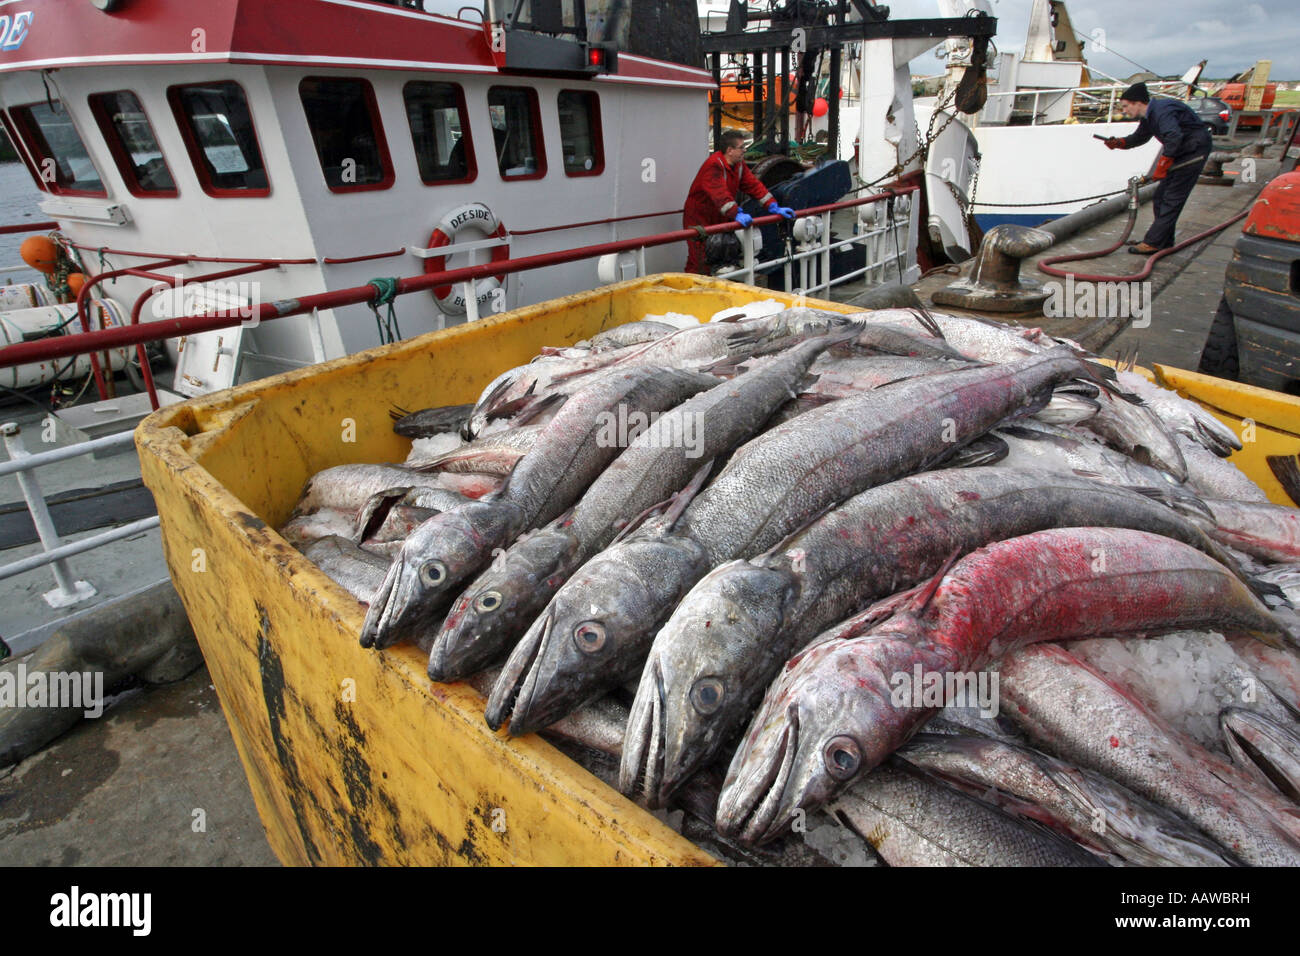 Boxes of fish lined up on the quayside at the white fish port of Peterhead Harbour, Aberdeenshire, Scotland. UK Stock Photo